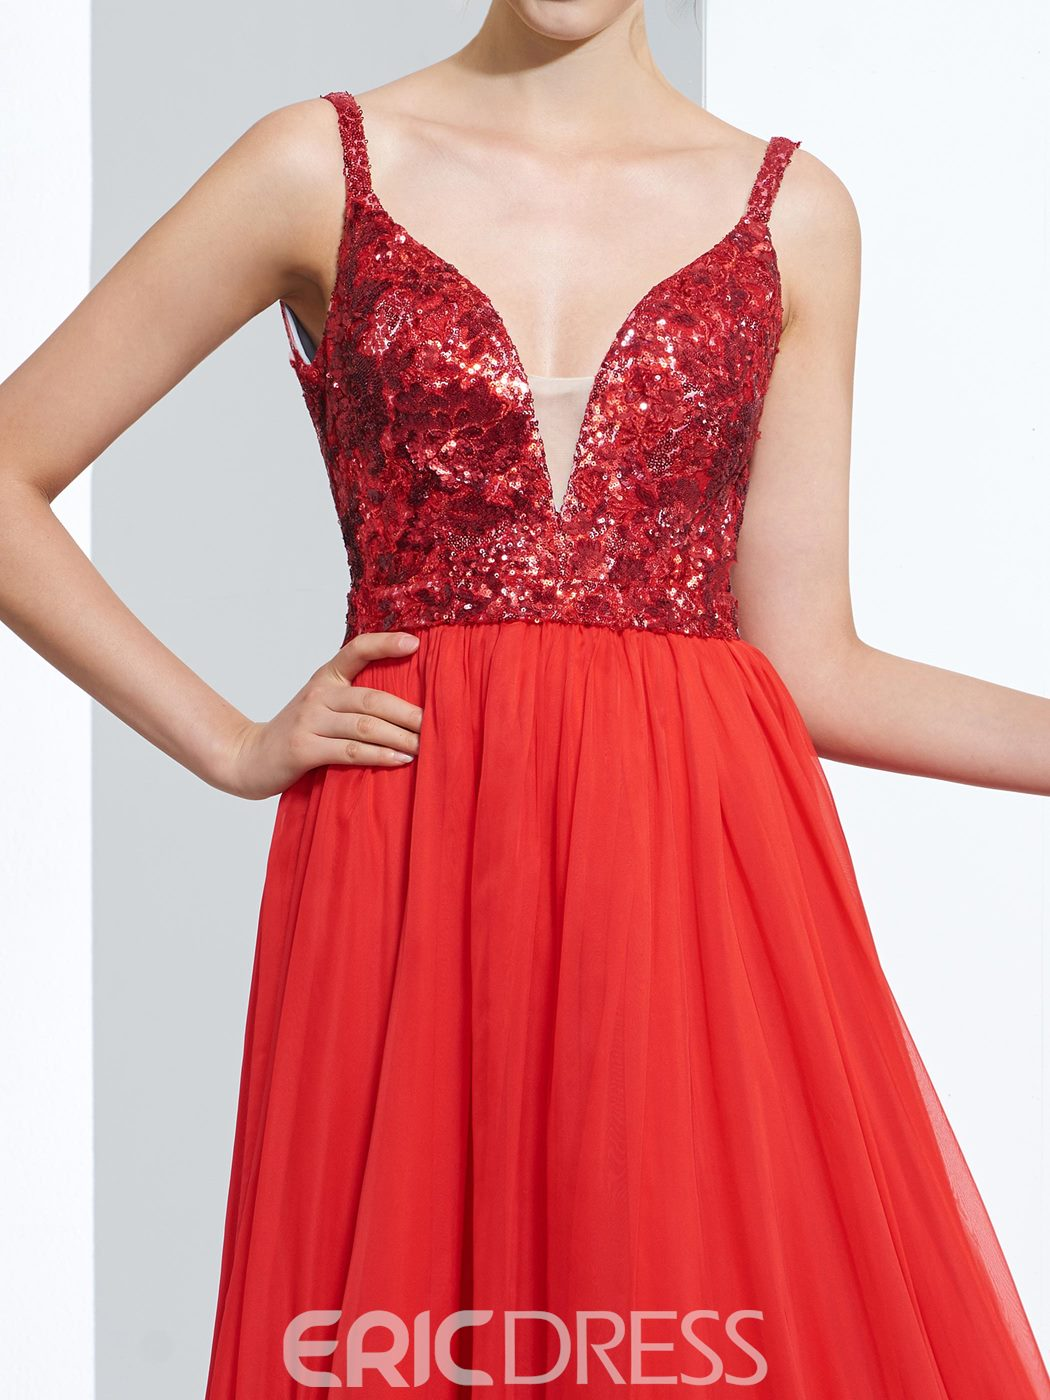 Ericdress A-Line Spathetti Straps Sequins Floor-Length Prom Dress